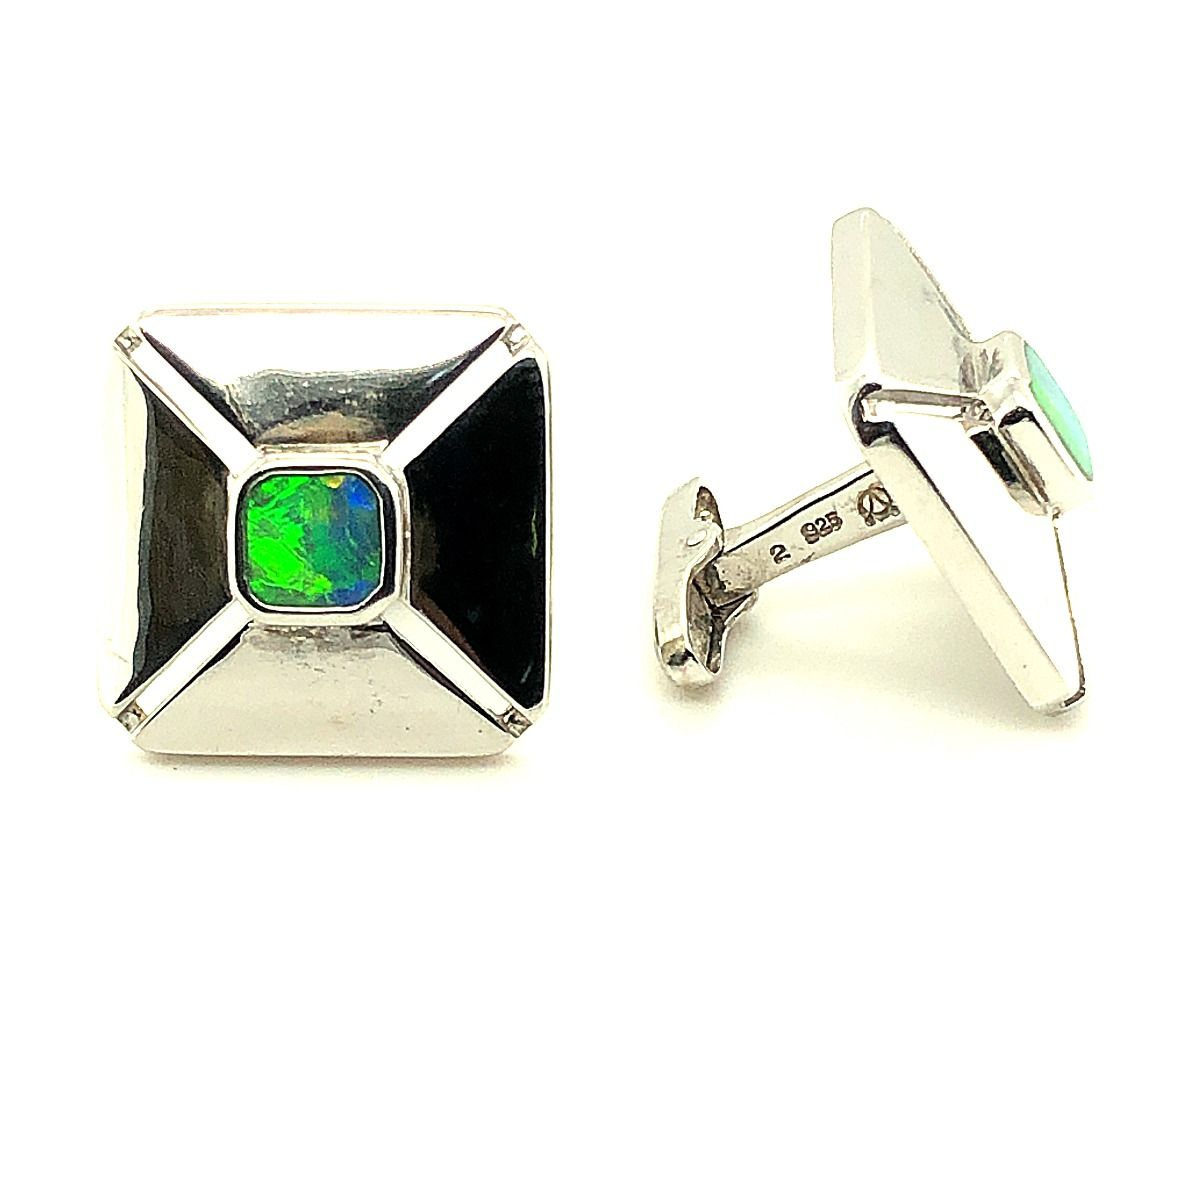 Square Shaped Sterling Silver Inlaid Opal Cufflinks